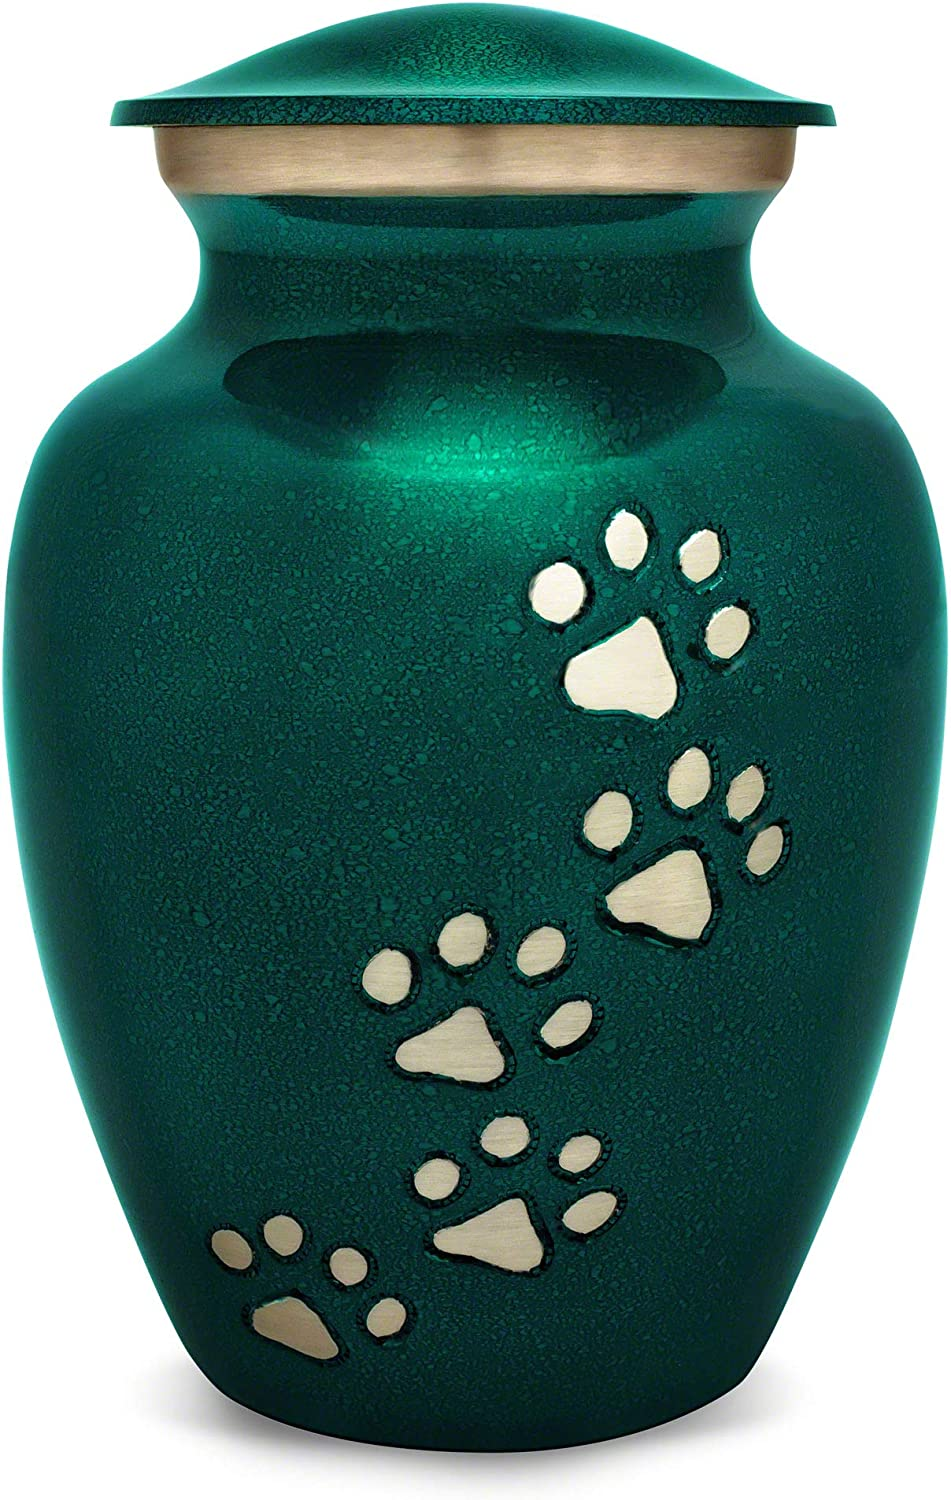 Best Friend Services Ottillie Paws Series Pet Urn Marine Green with greenical Pewter Paws (Small)